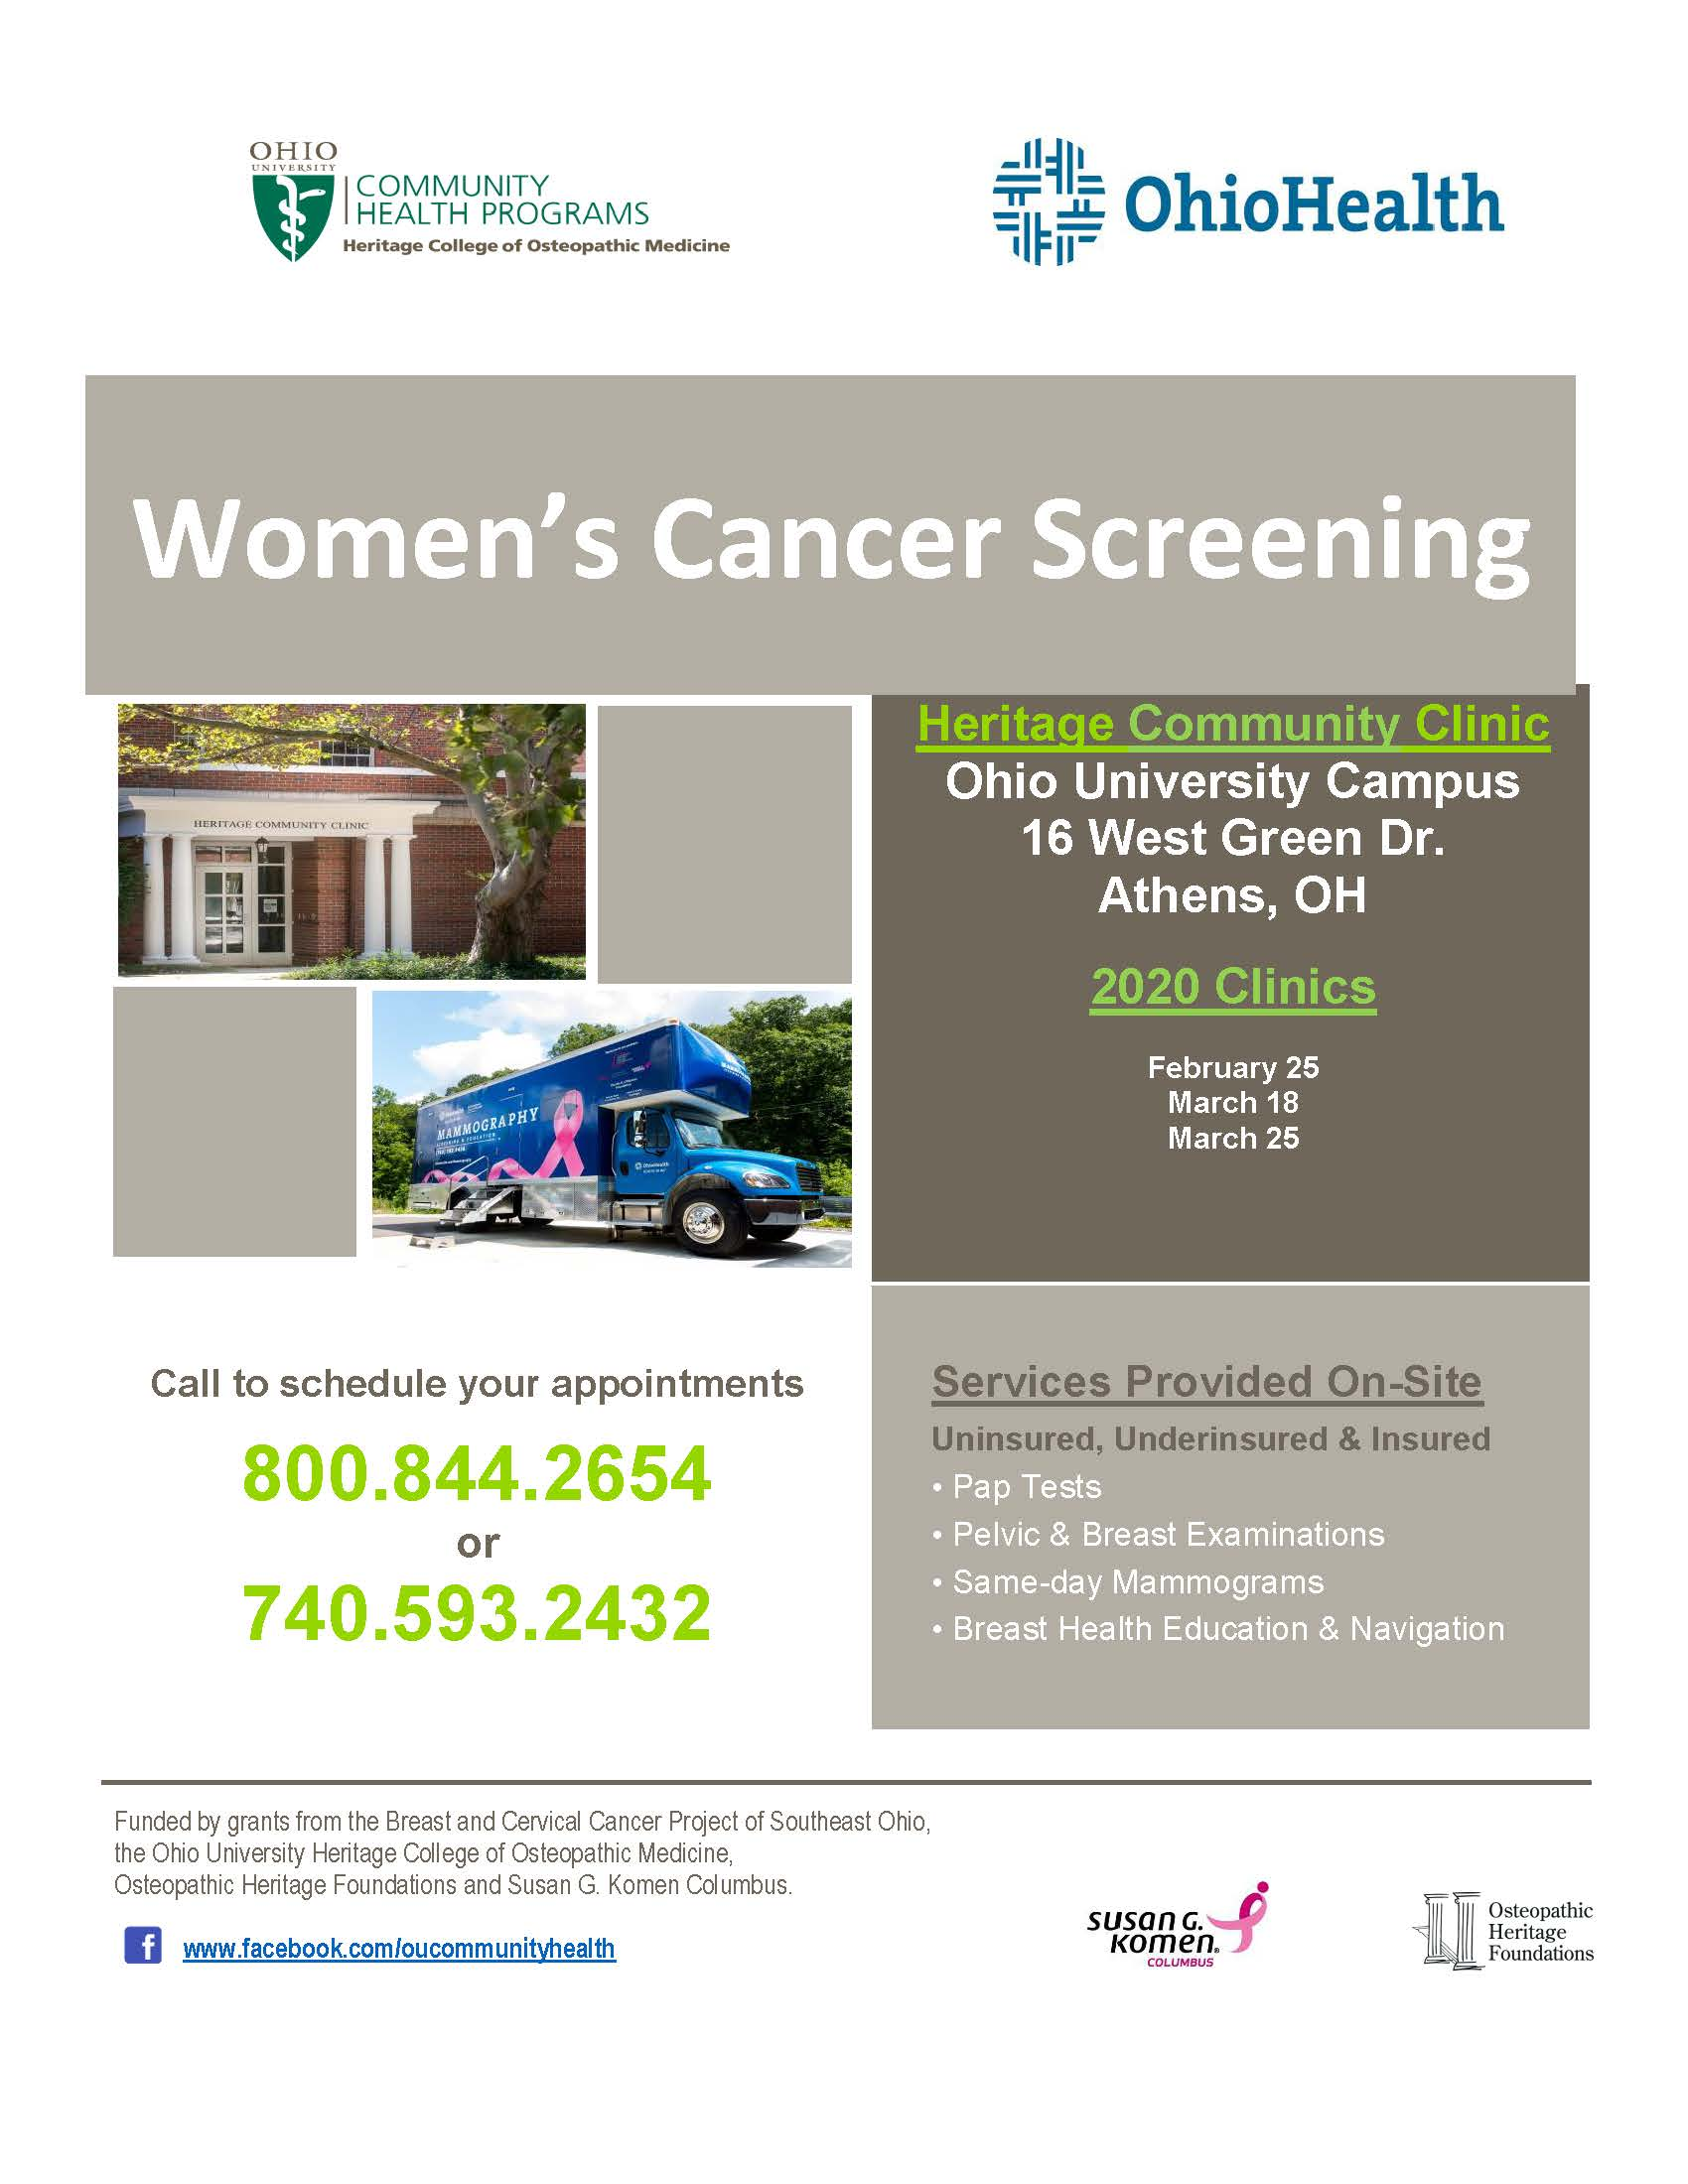 A flier for the women's cancer screening